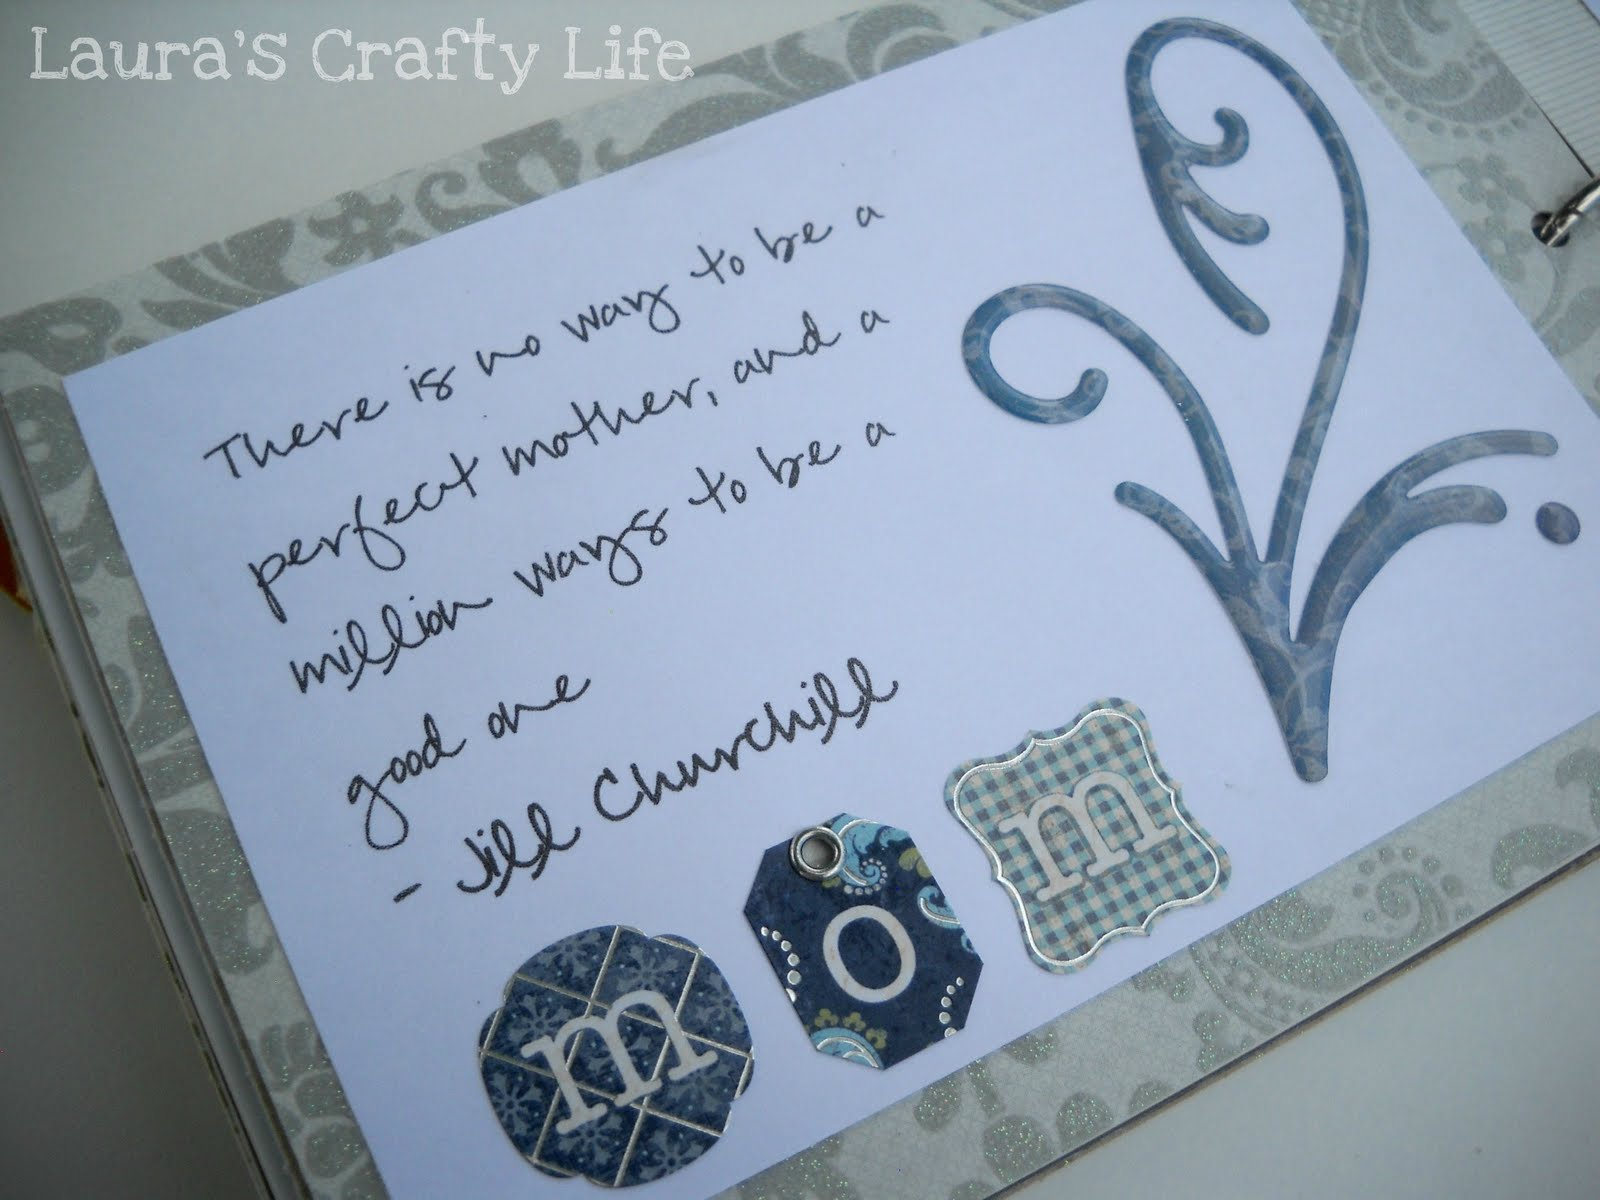 Baby Shower: Advice Book - Laura's Crafty Life